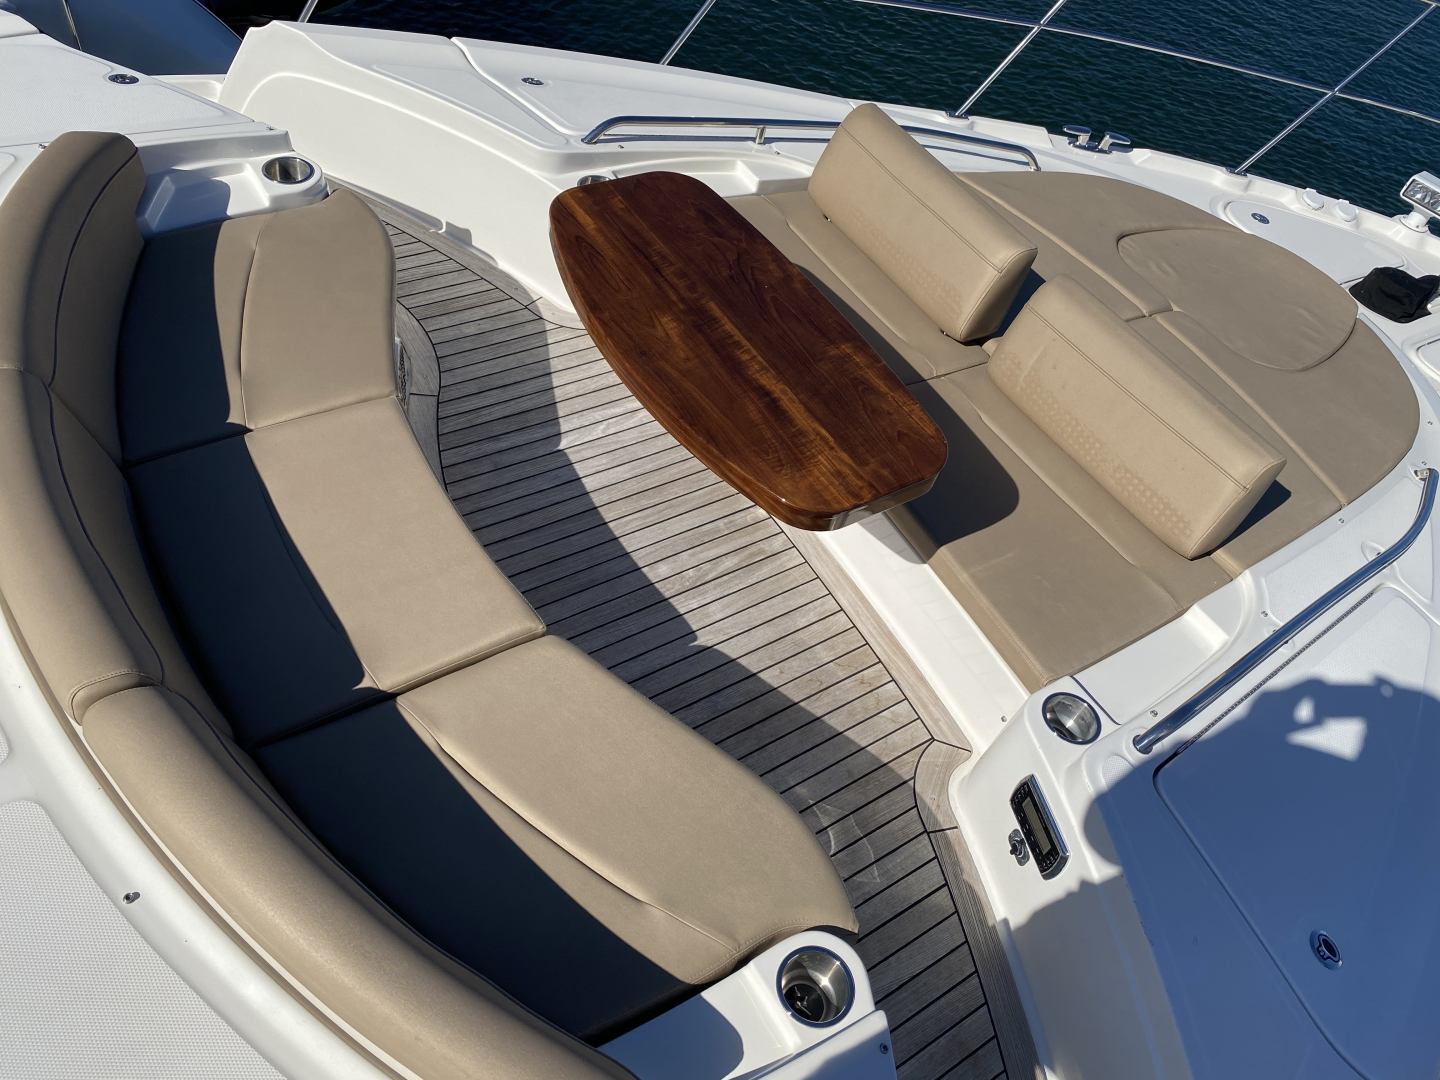 Sea Ray-L650 Express 2016-Cozy Fort Lauderdale-Florida-United States-2016 Sea Ray L650 Bow-1367687 | Thumbnail